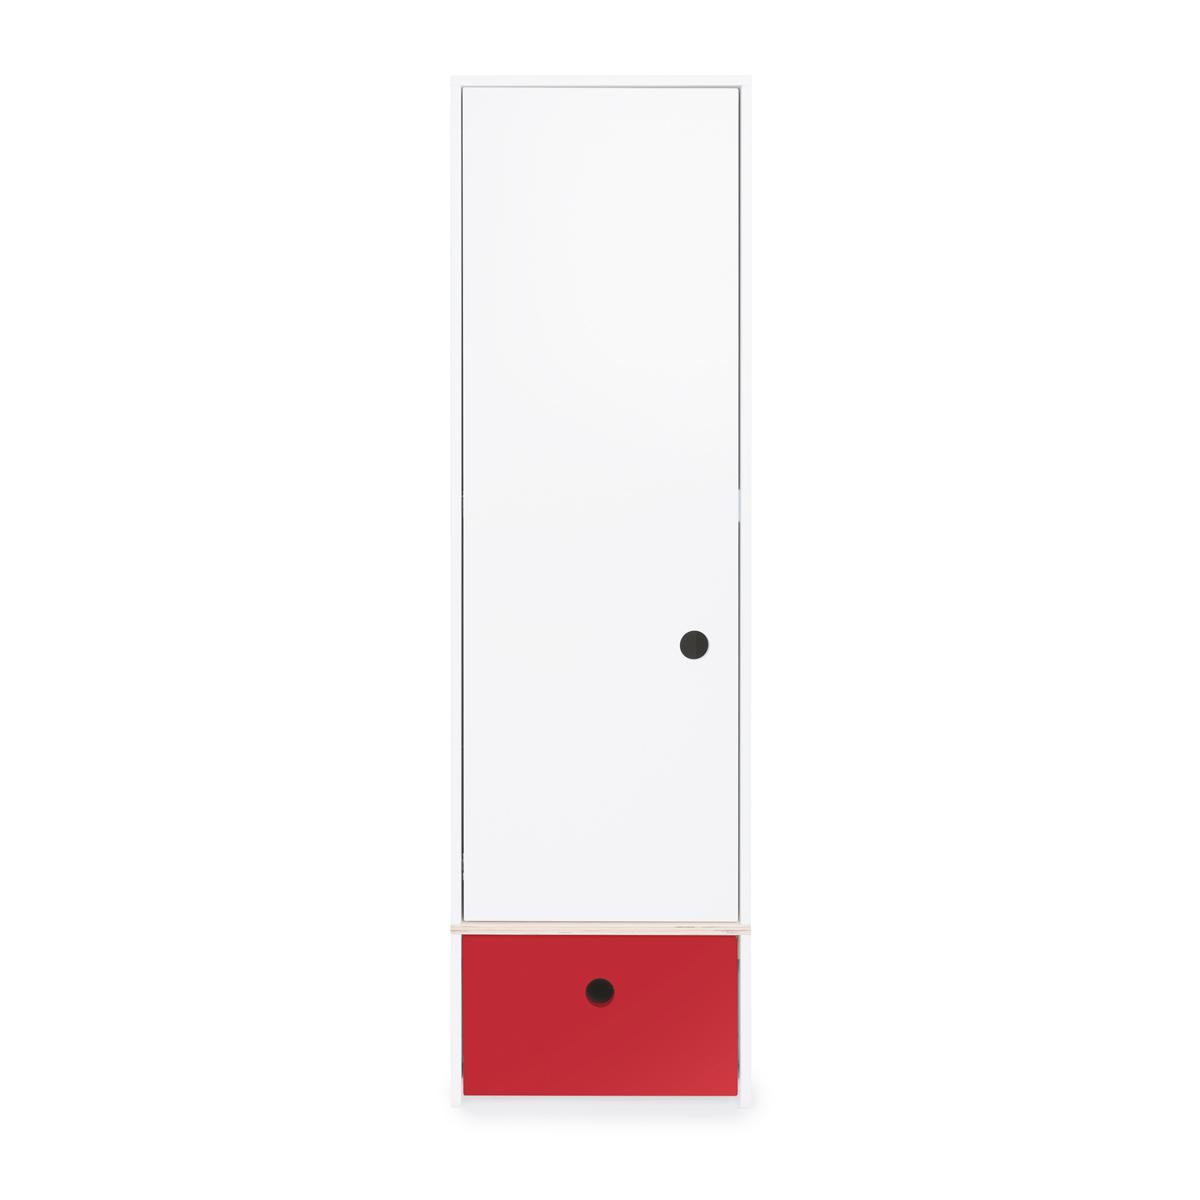 Armario 1 puerta COLORFLEX Abitare Kids cajón frontal true red